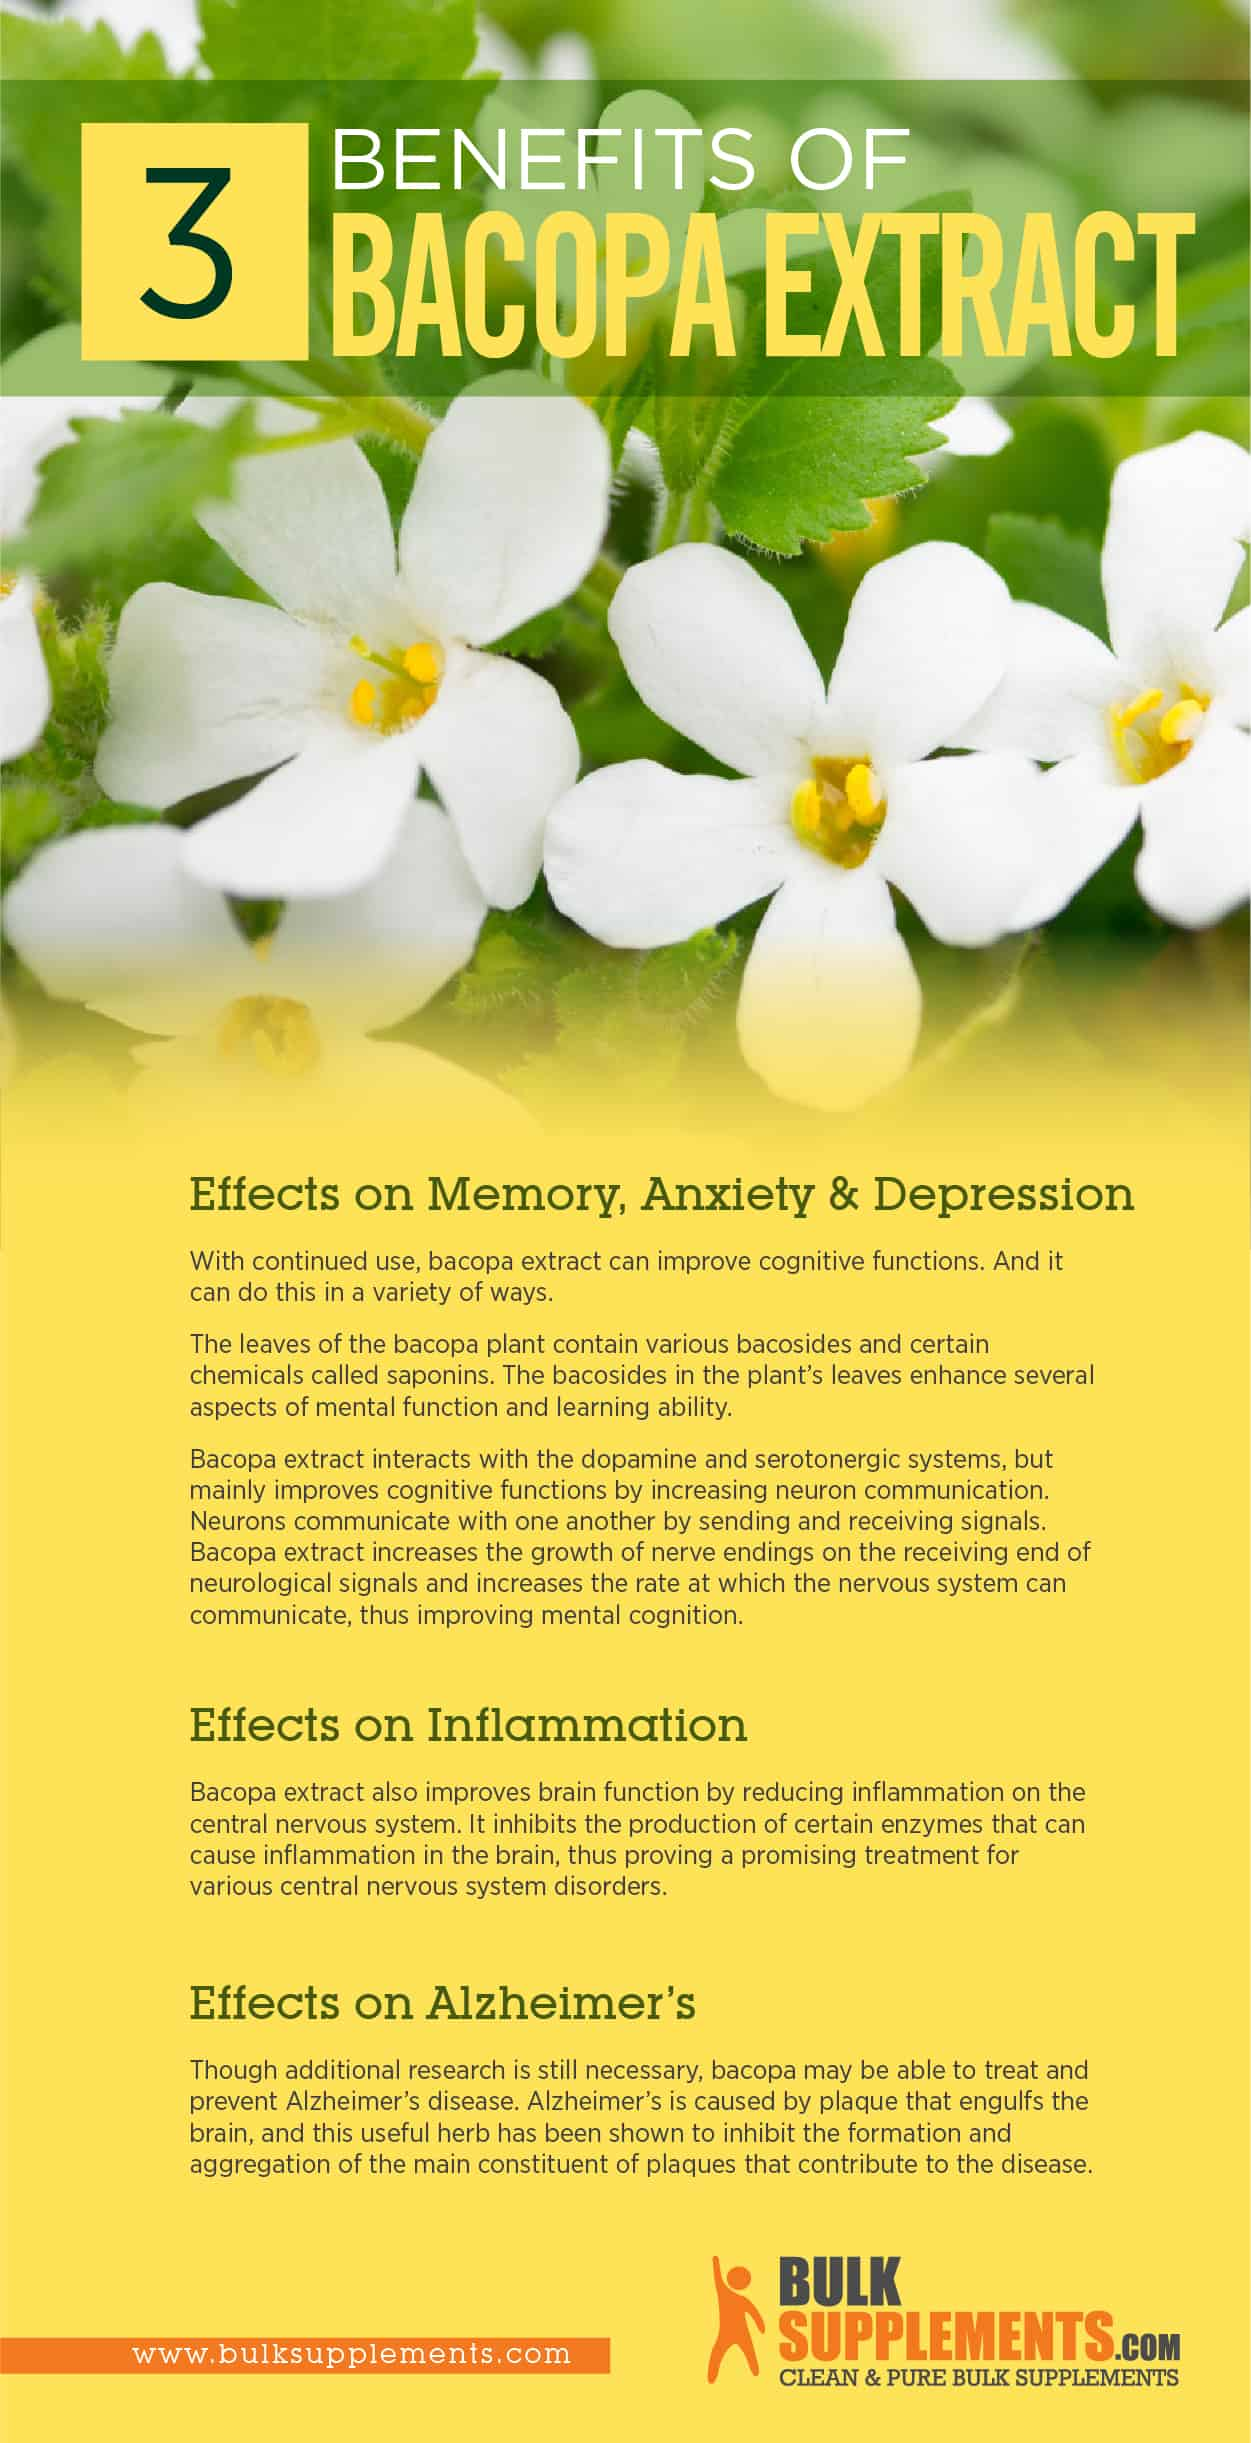 Bacopa Benefits